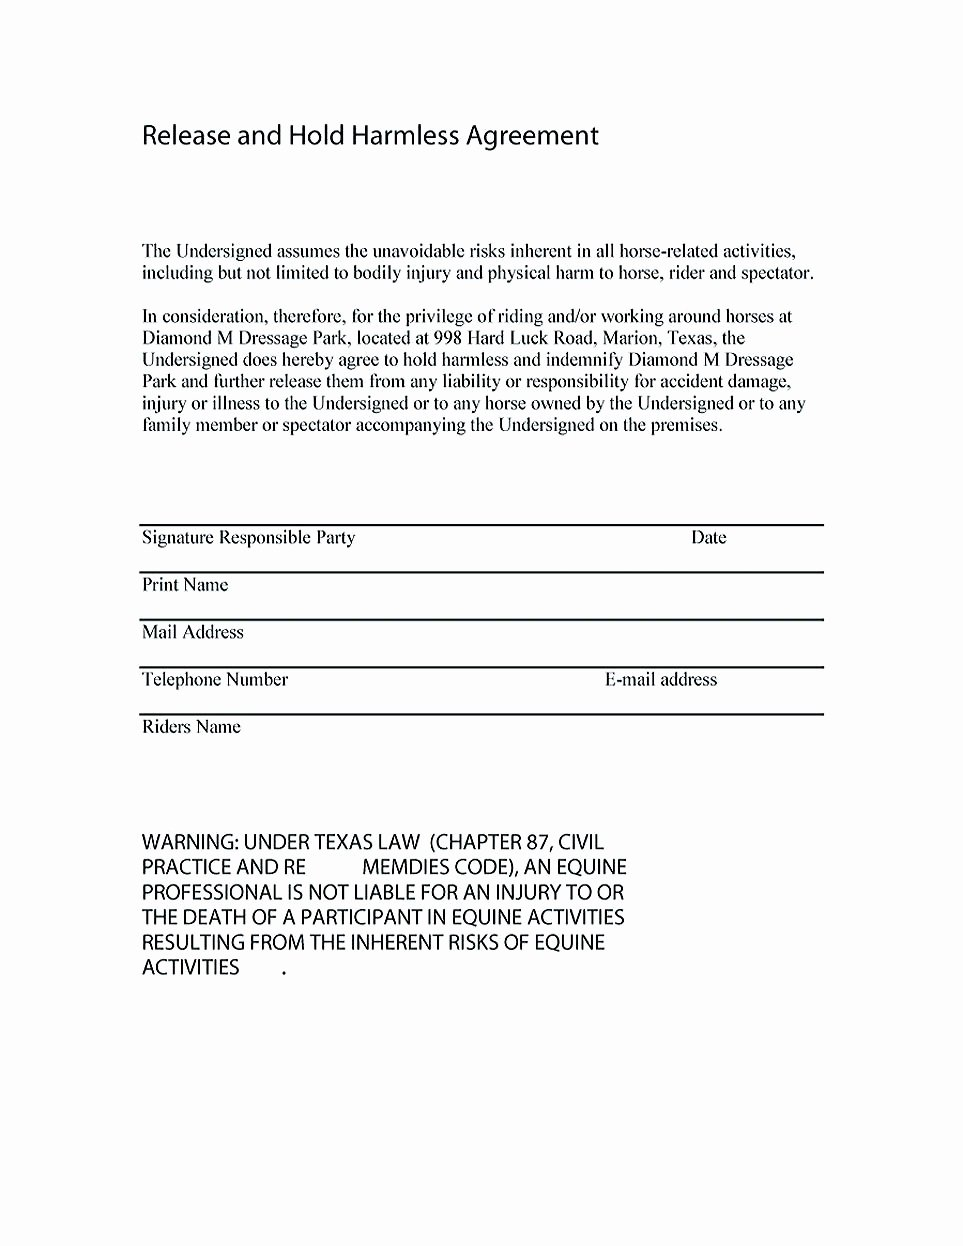 Hold Harmless Agreement Template Free Lovely Making Hold Harmless Agreement Template for Different Purposes